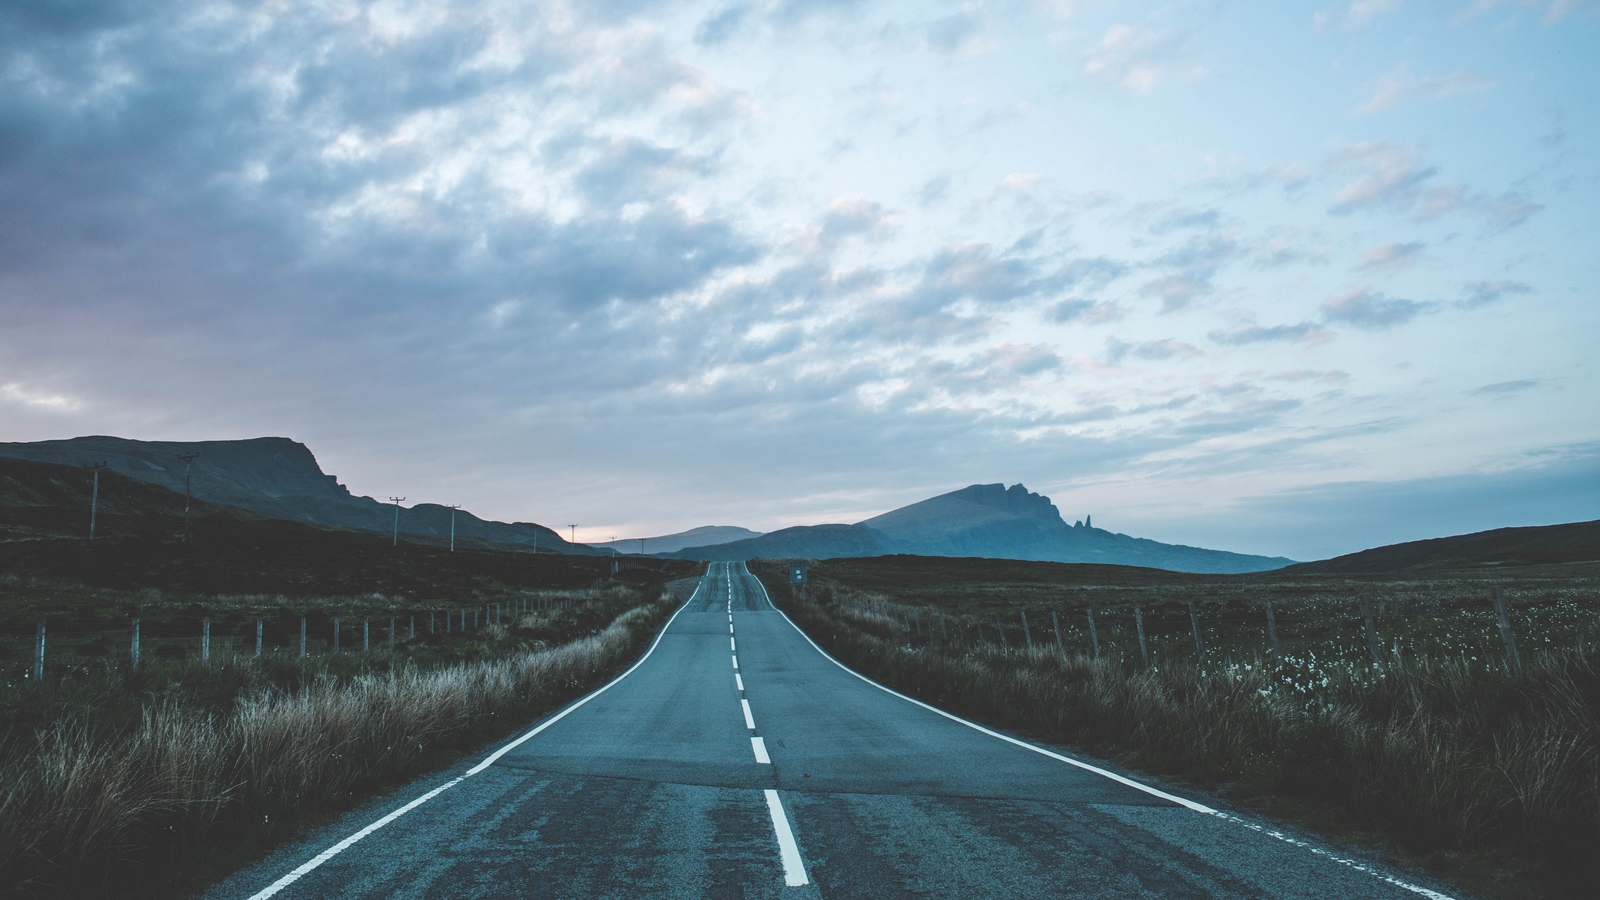 Download wallpaper 1600x900 road marking mountains portree 1600x900